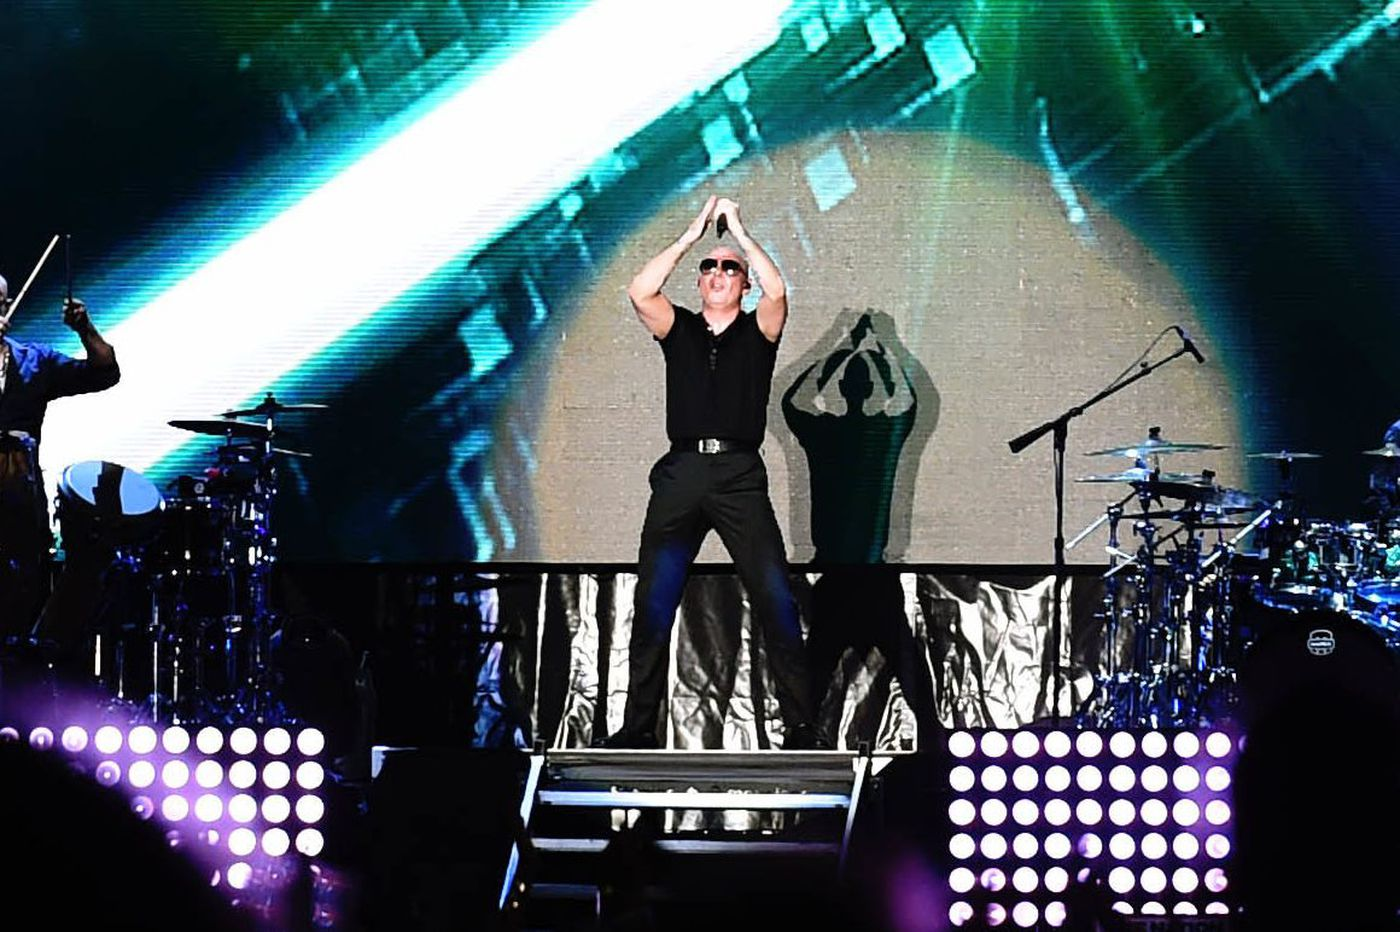 Pitbull lights up the Ben Franklin Parkway on the Fourth of July